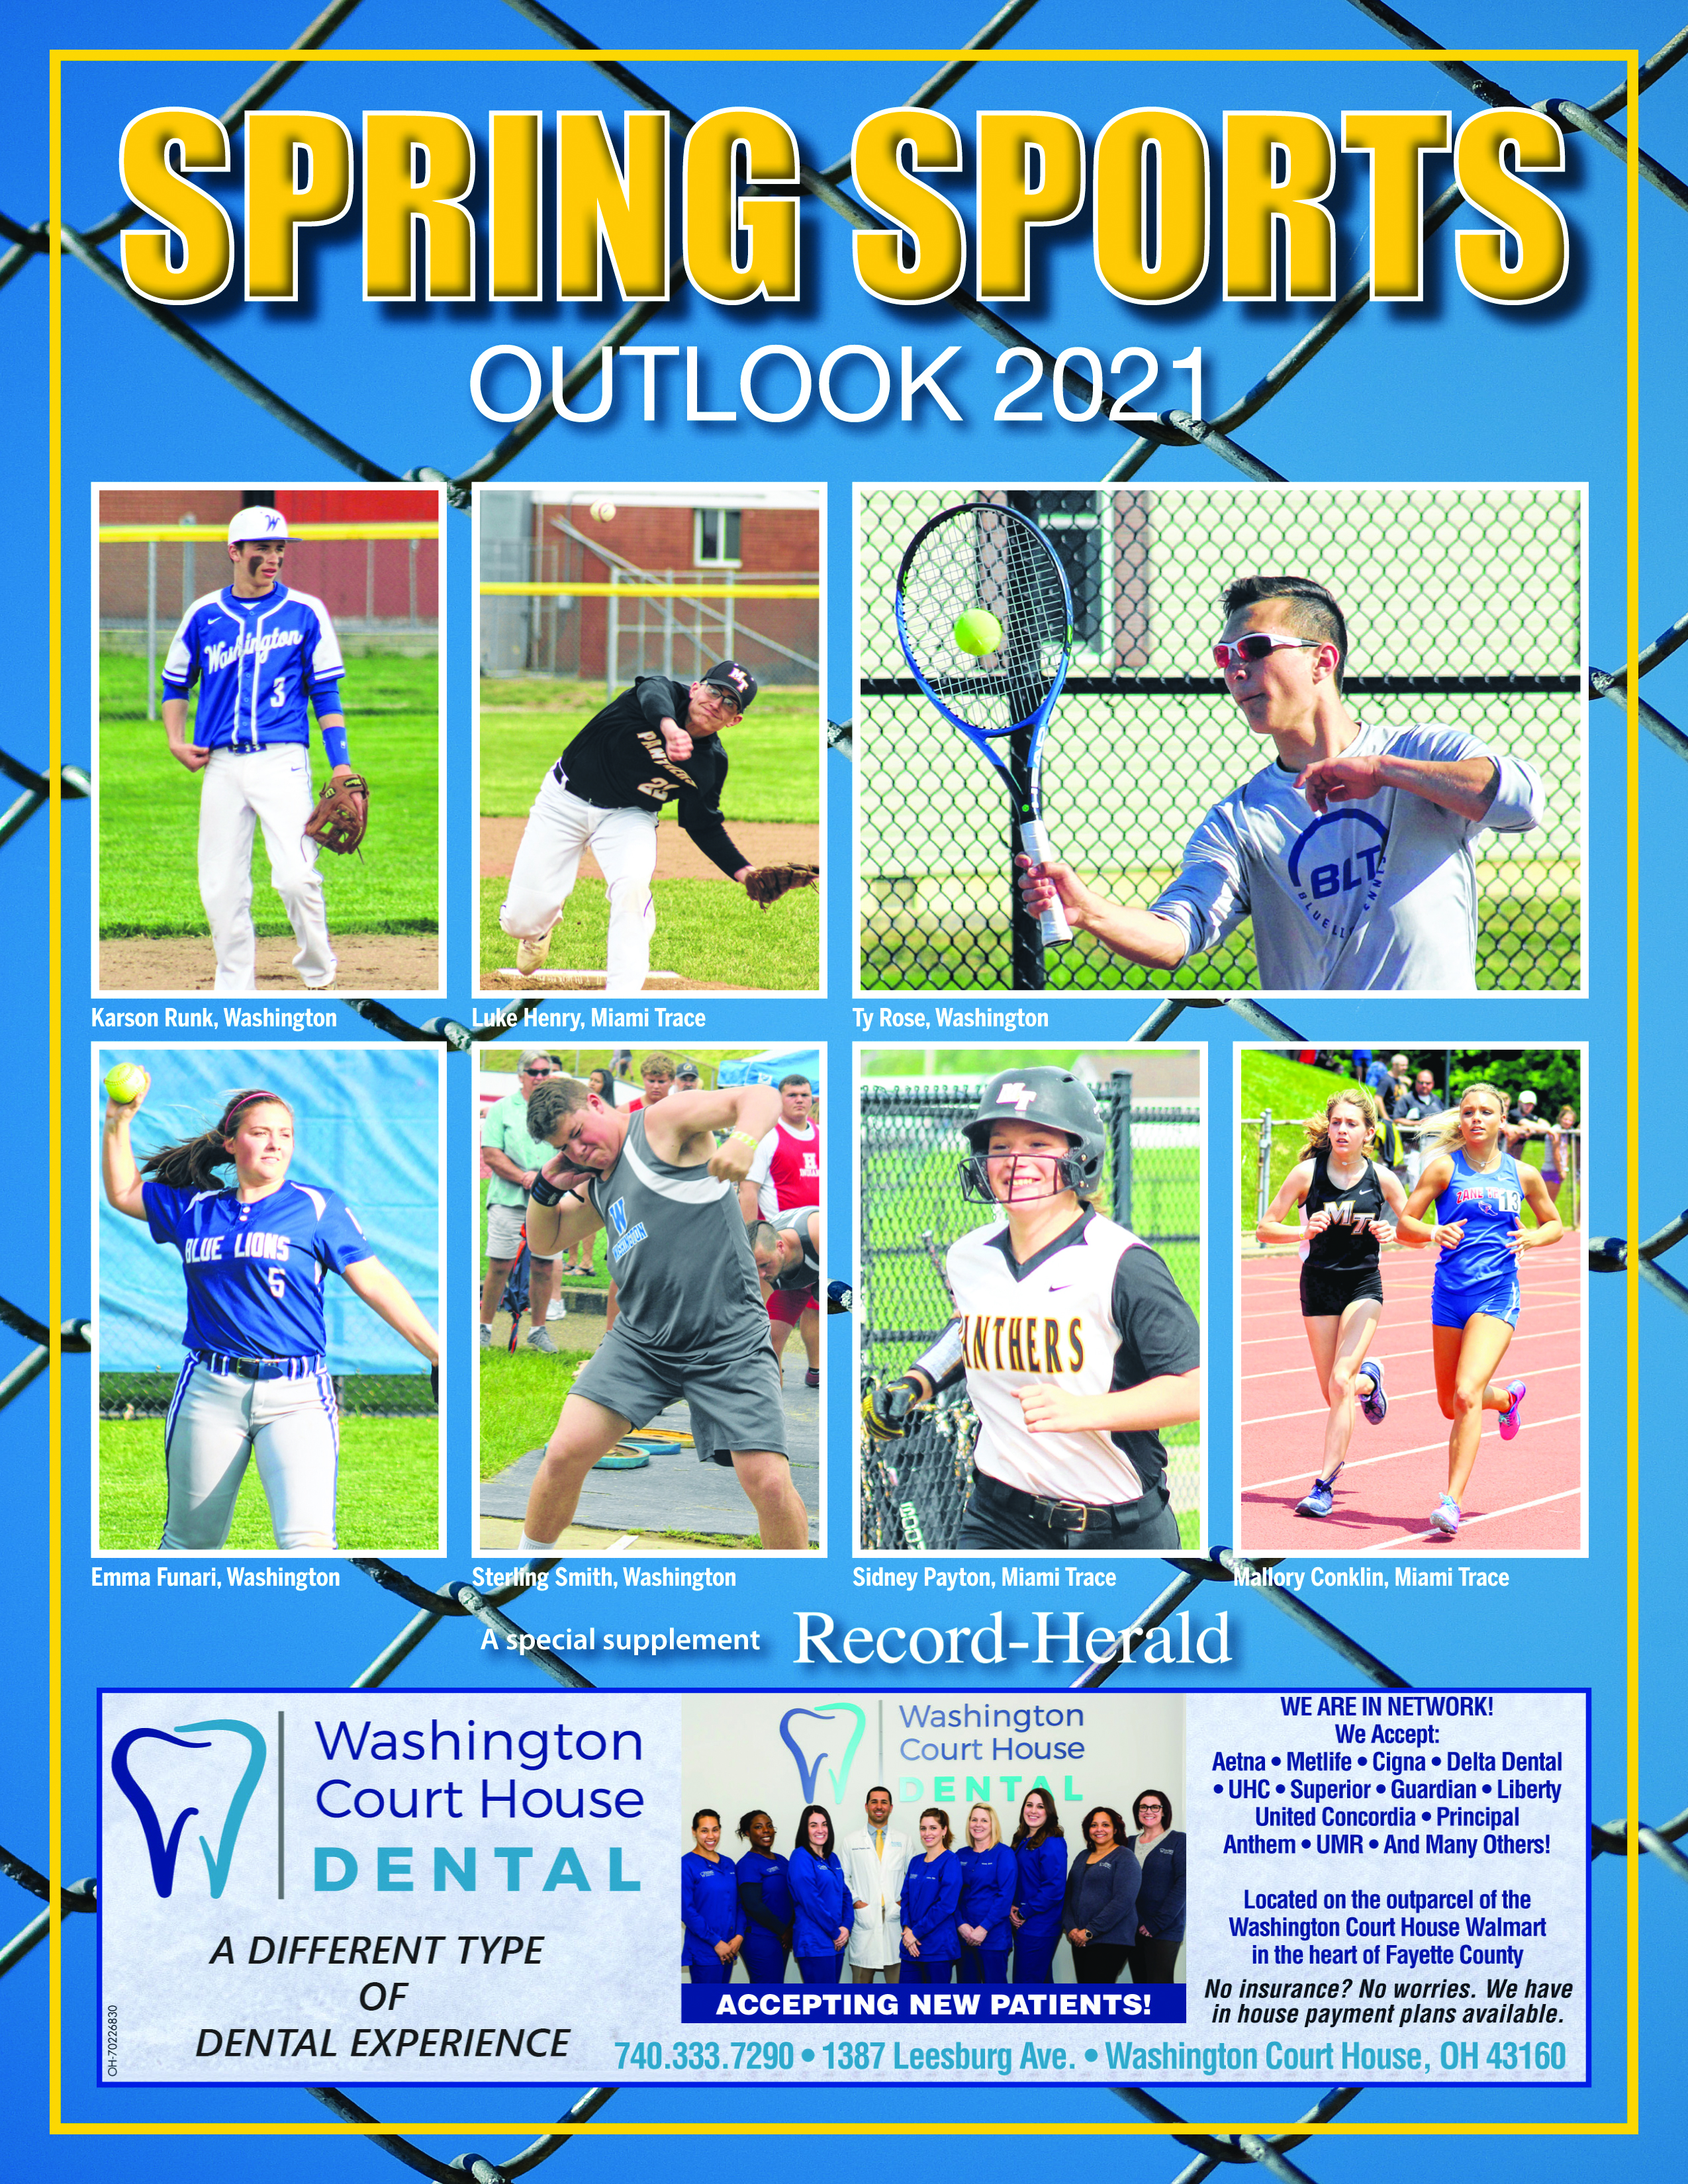 Spring Sports Outlook 2021